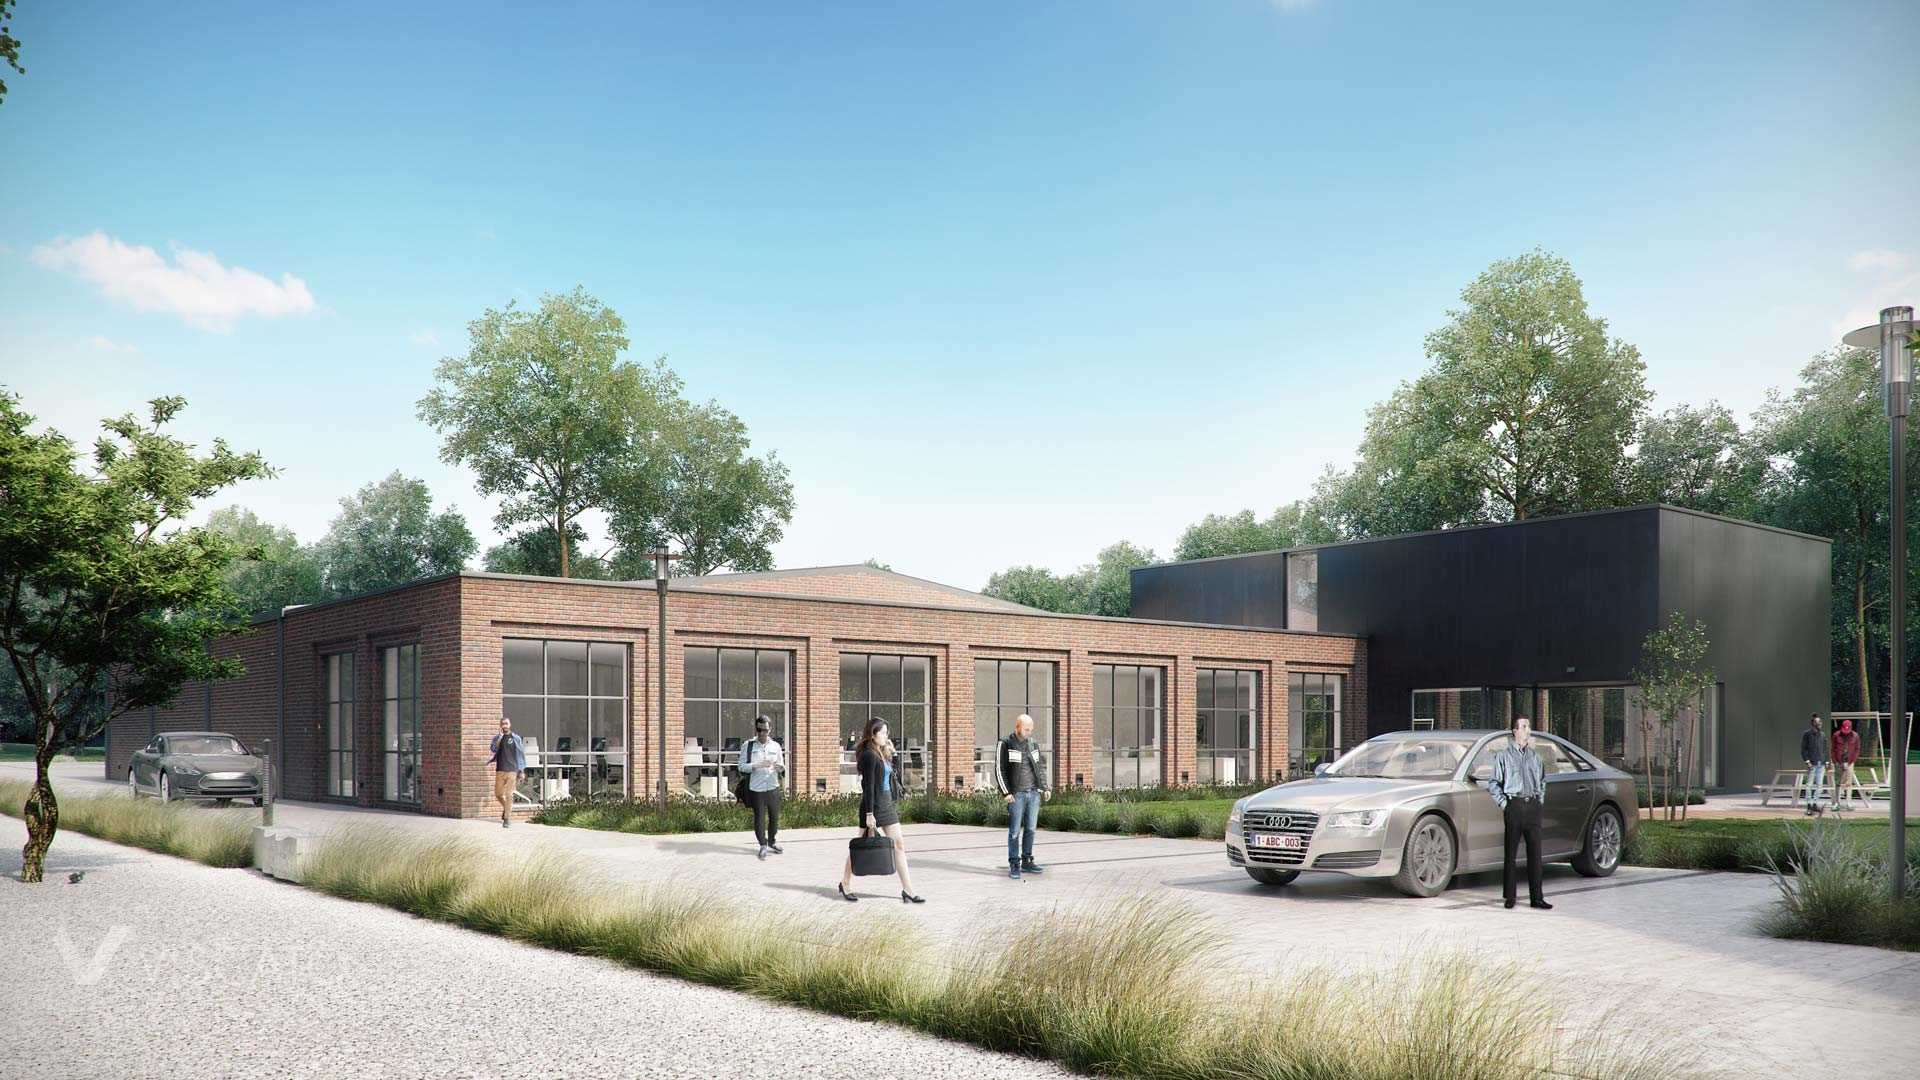 industrial style office building with the parking lot- 3 d visualisation